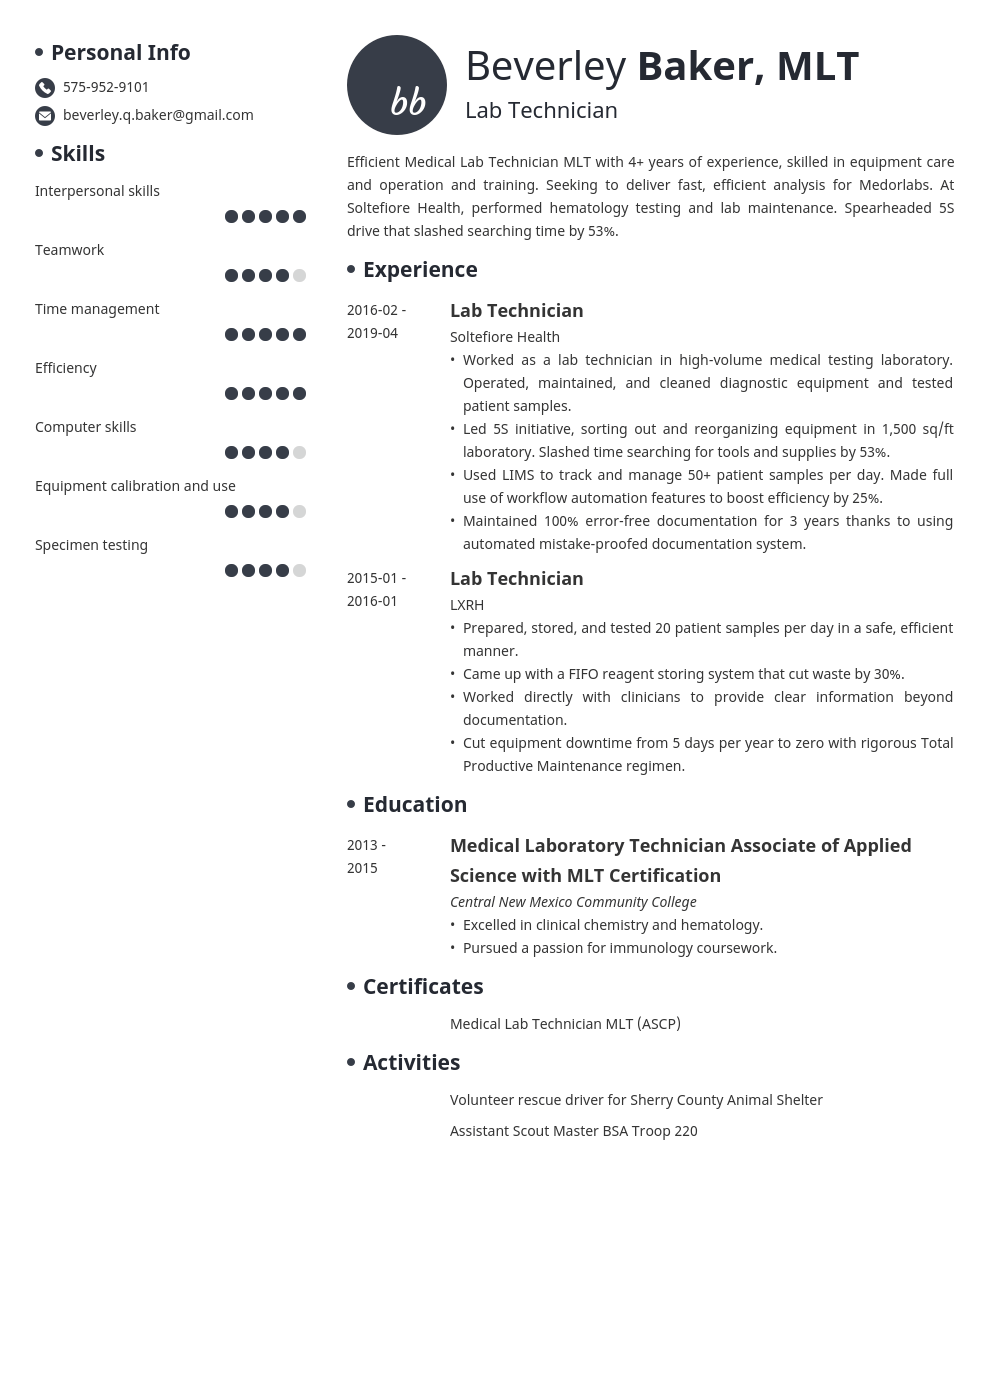 caregiver resume template vibes in 2020 Resume examples